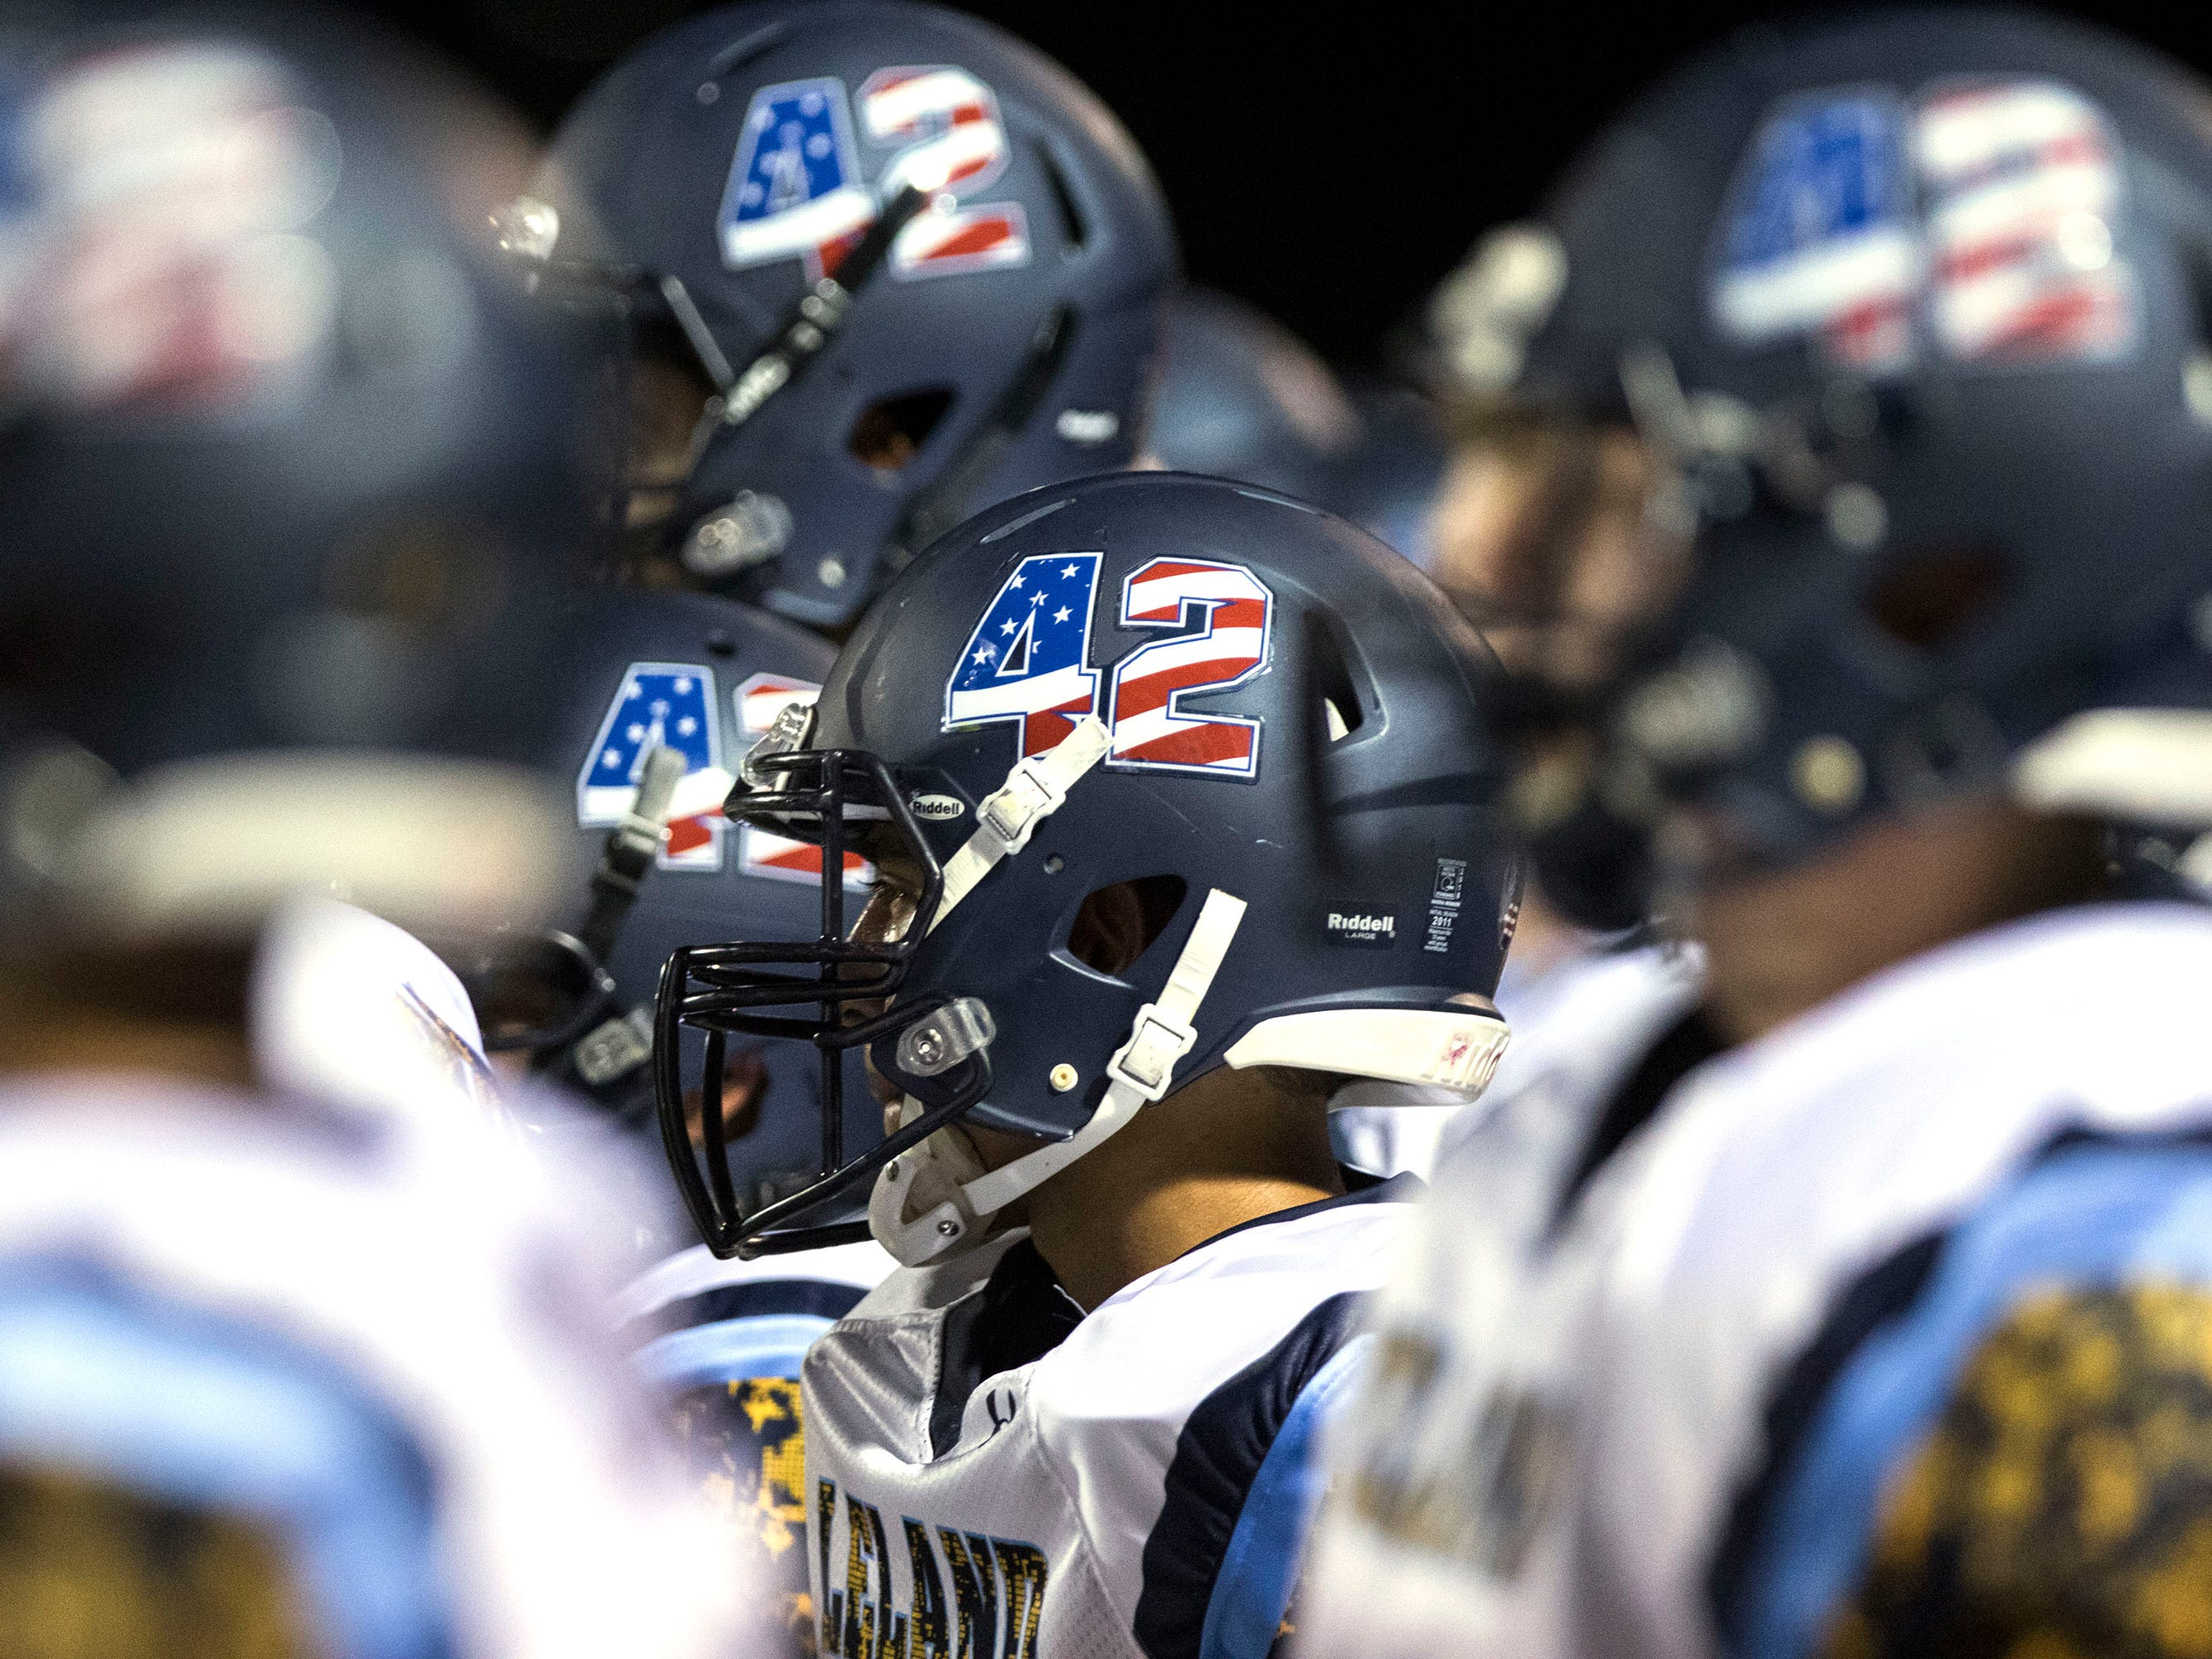 Leland's players wear #42 in honor of Pat Tillman on their helmets during their game with Liberty in Peoria Friday, Sept.14, 2018. #azhsfb